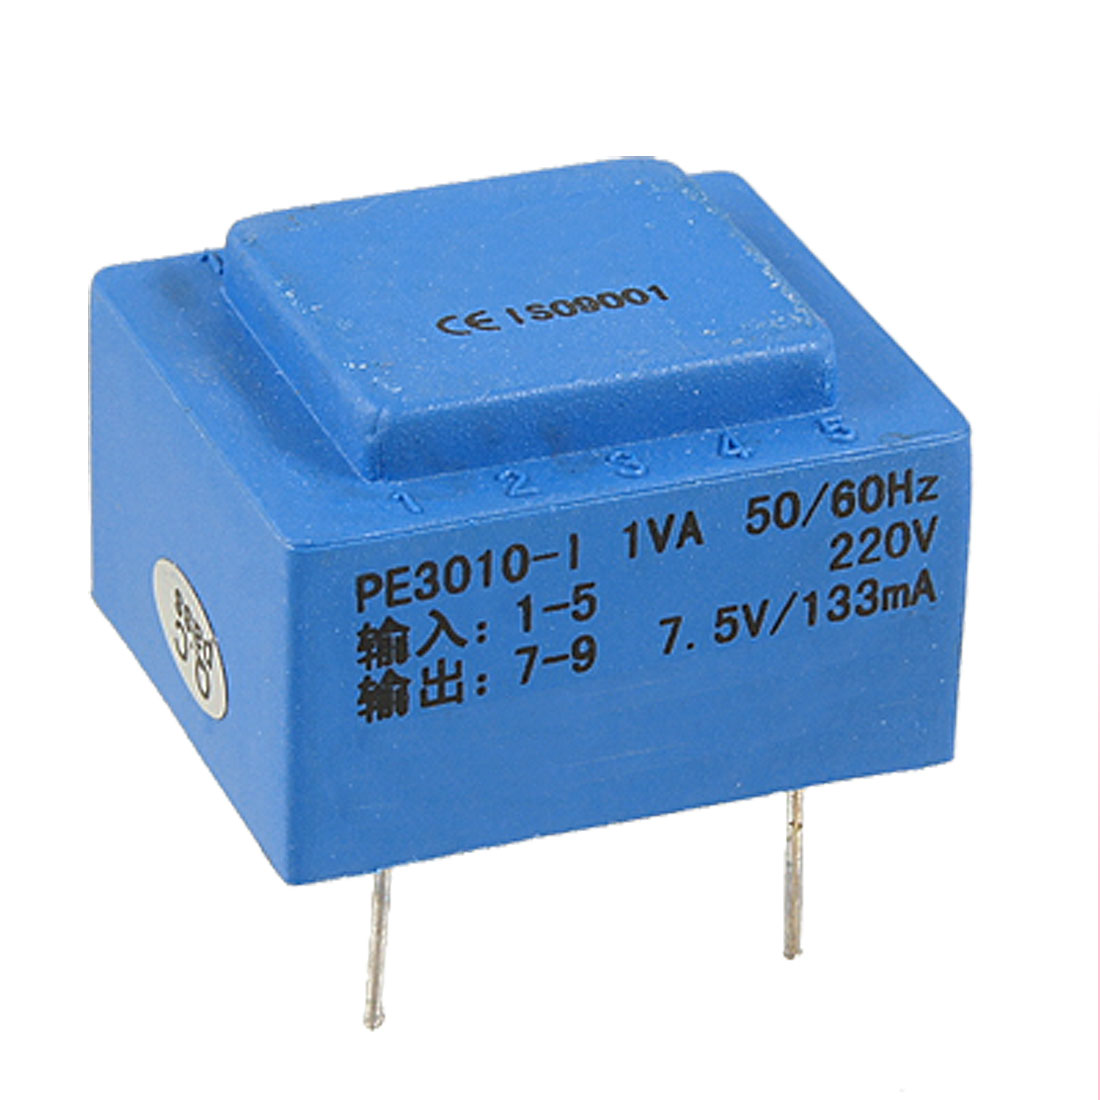 Vacuum Epoxy Resin Sealed Single Way Output Encapsulated Transformer 1VA